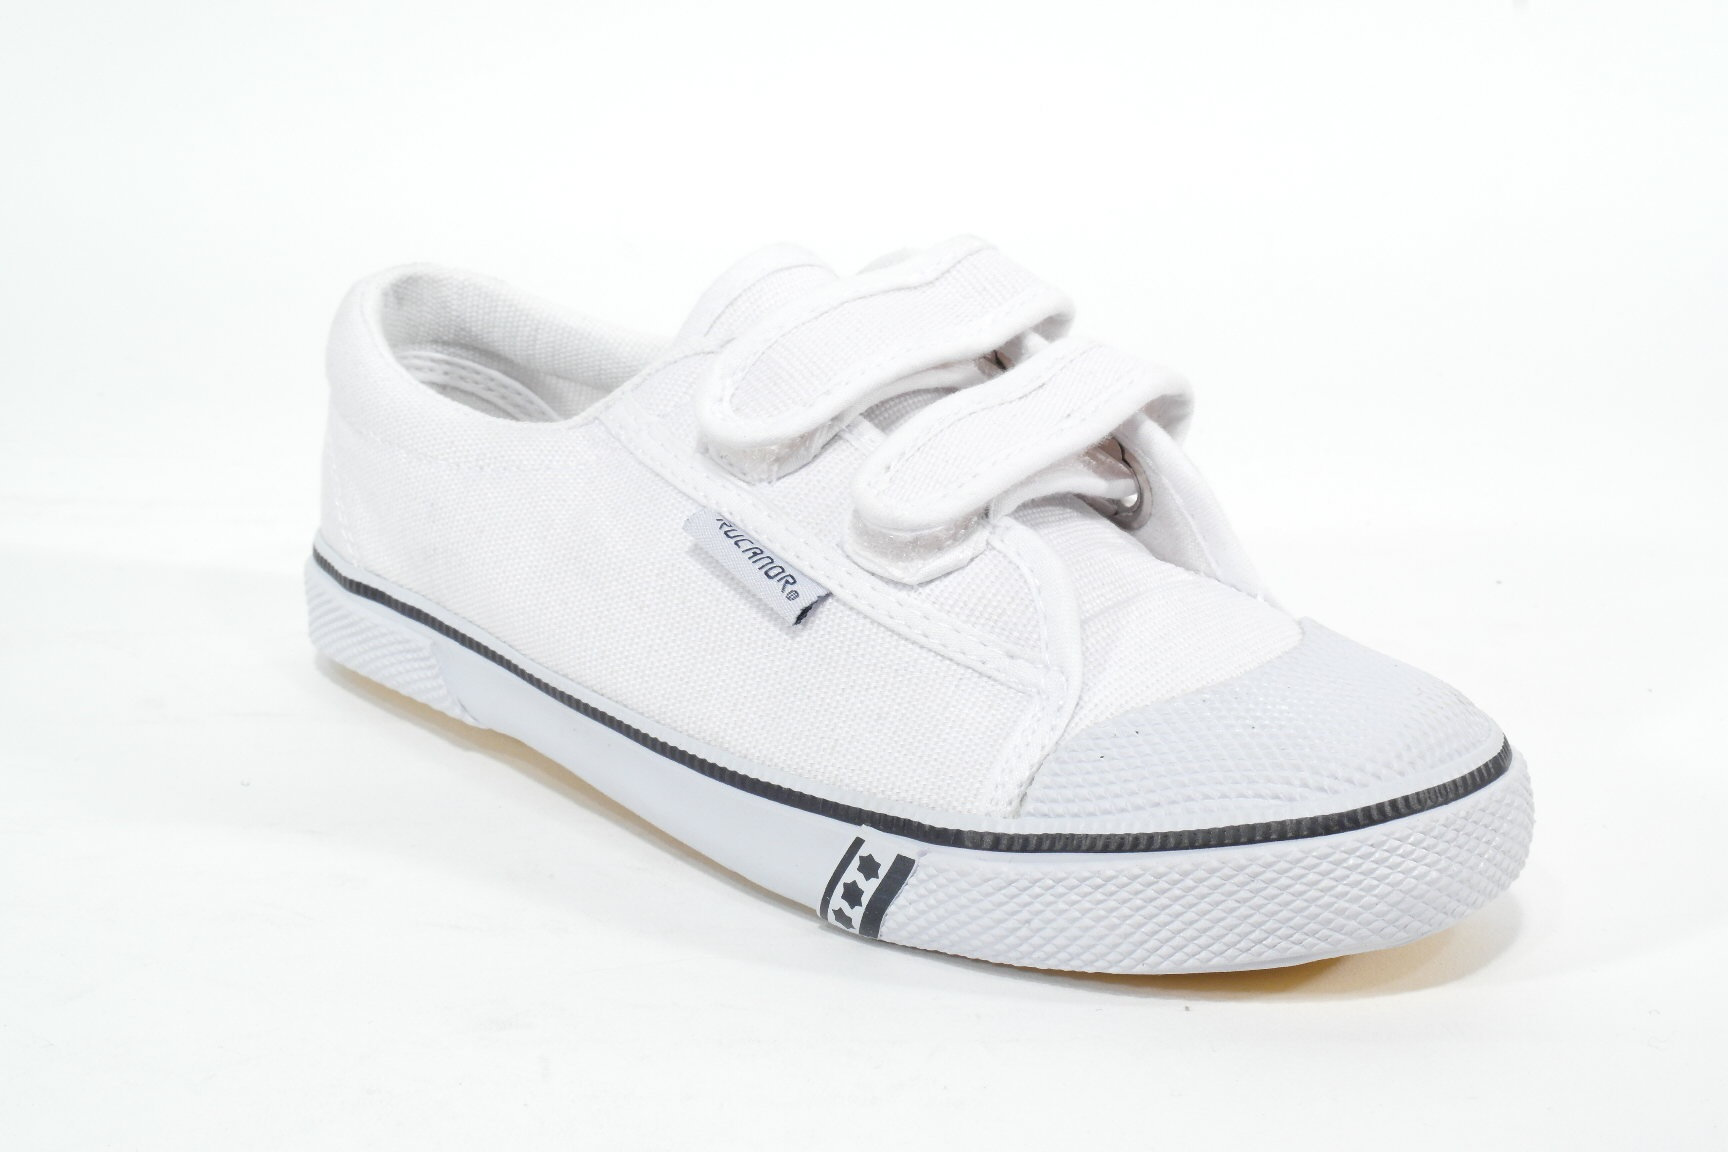 Chaussures Blanches Rucanor Pour Les Hommes Y1aZyE9vB